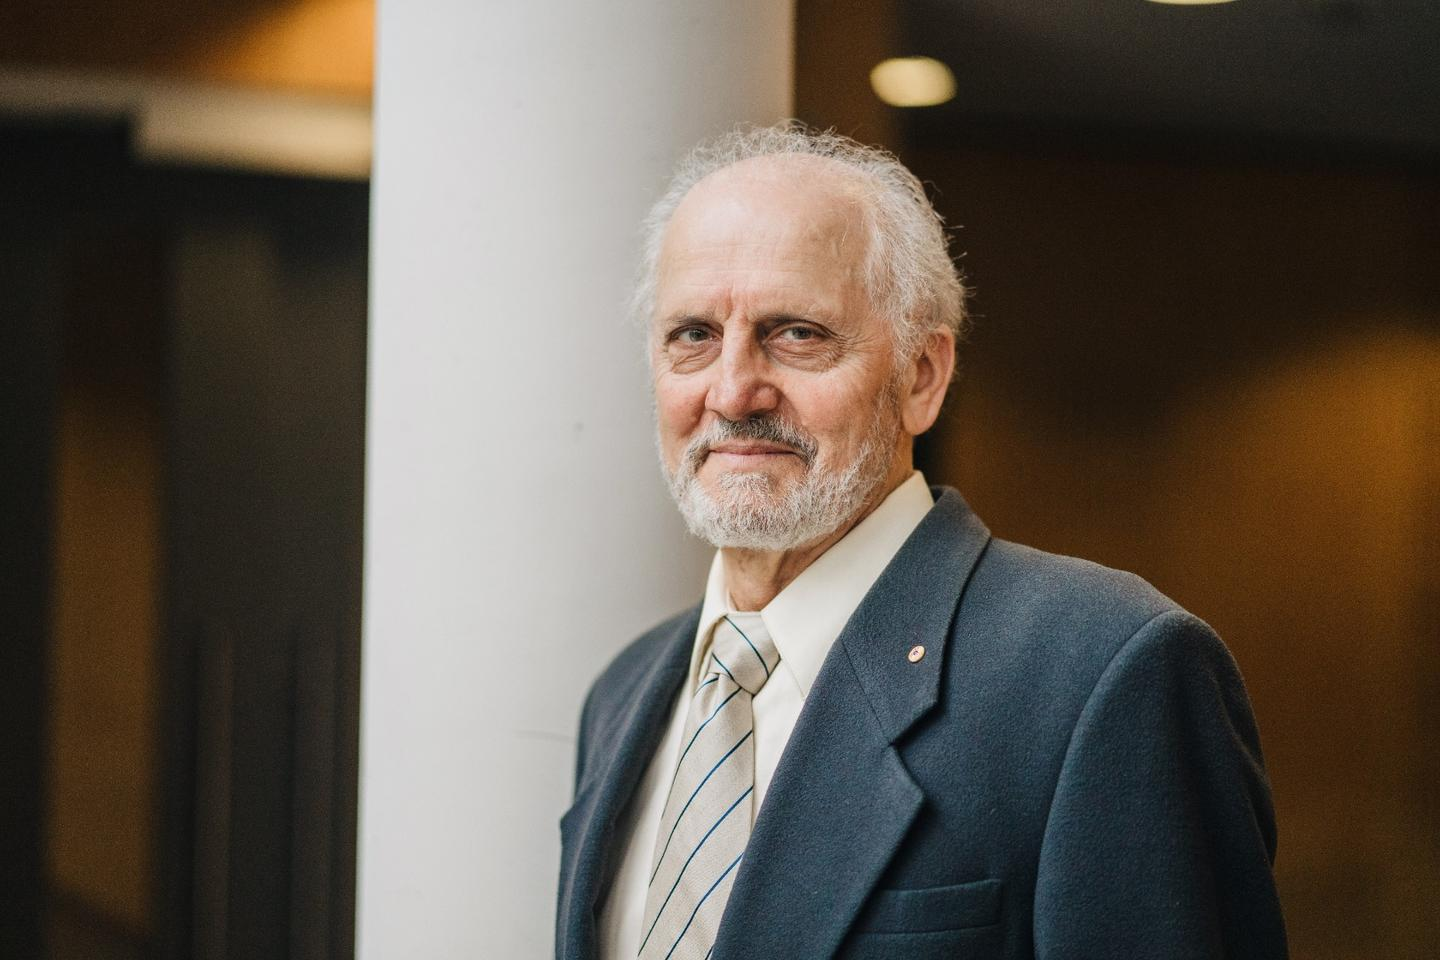 Professor George Paxinos AO (Order of Australia) has discovered a new region of the human brain